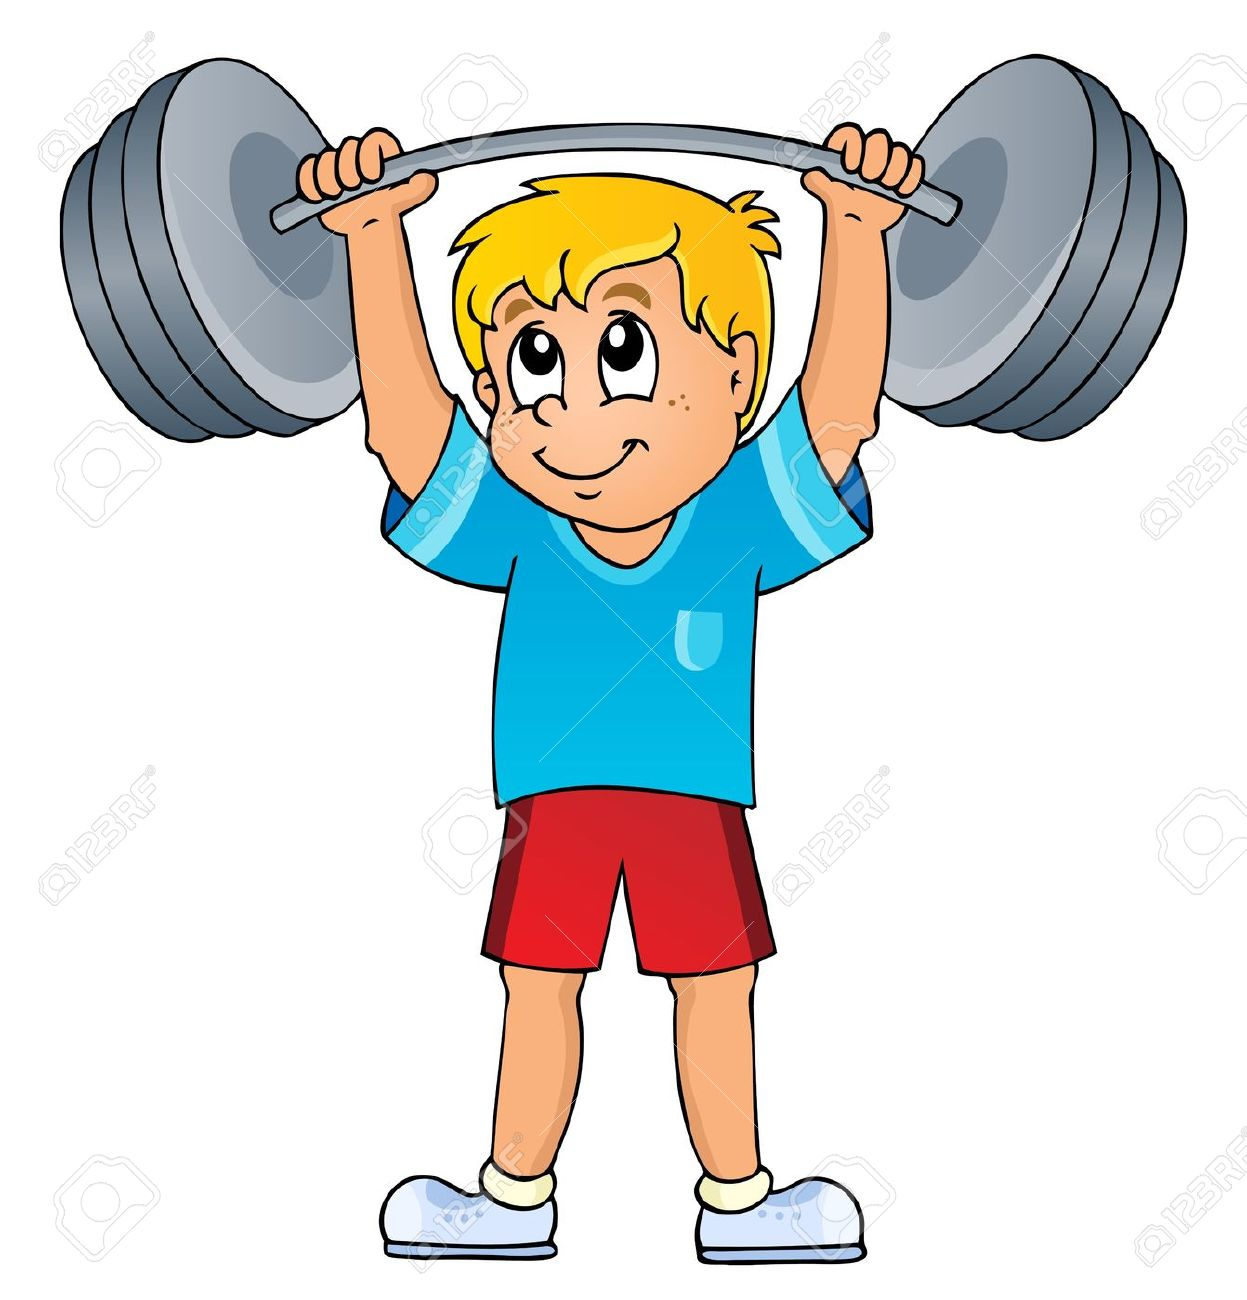 Weight lifter clipart graphic Girl Lifting Weights Clipart | Free download best Girl Lifting ... graphic